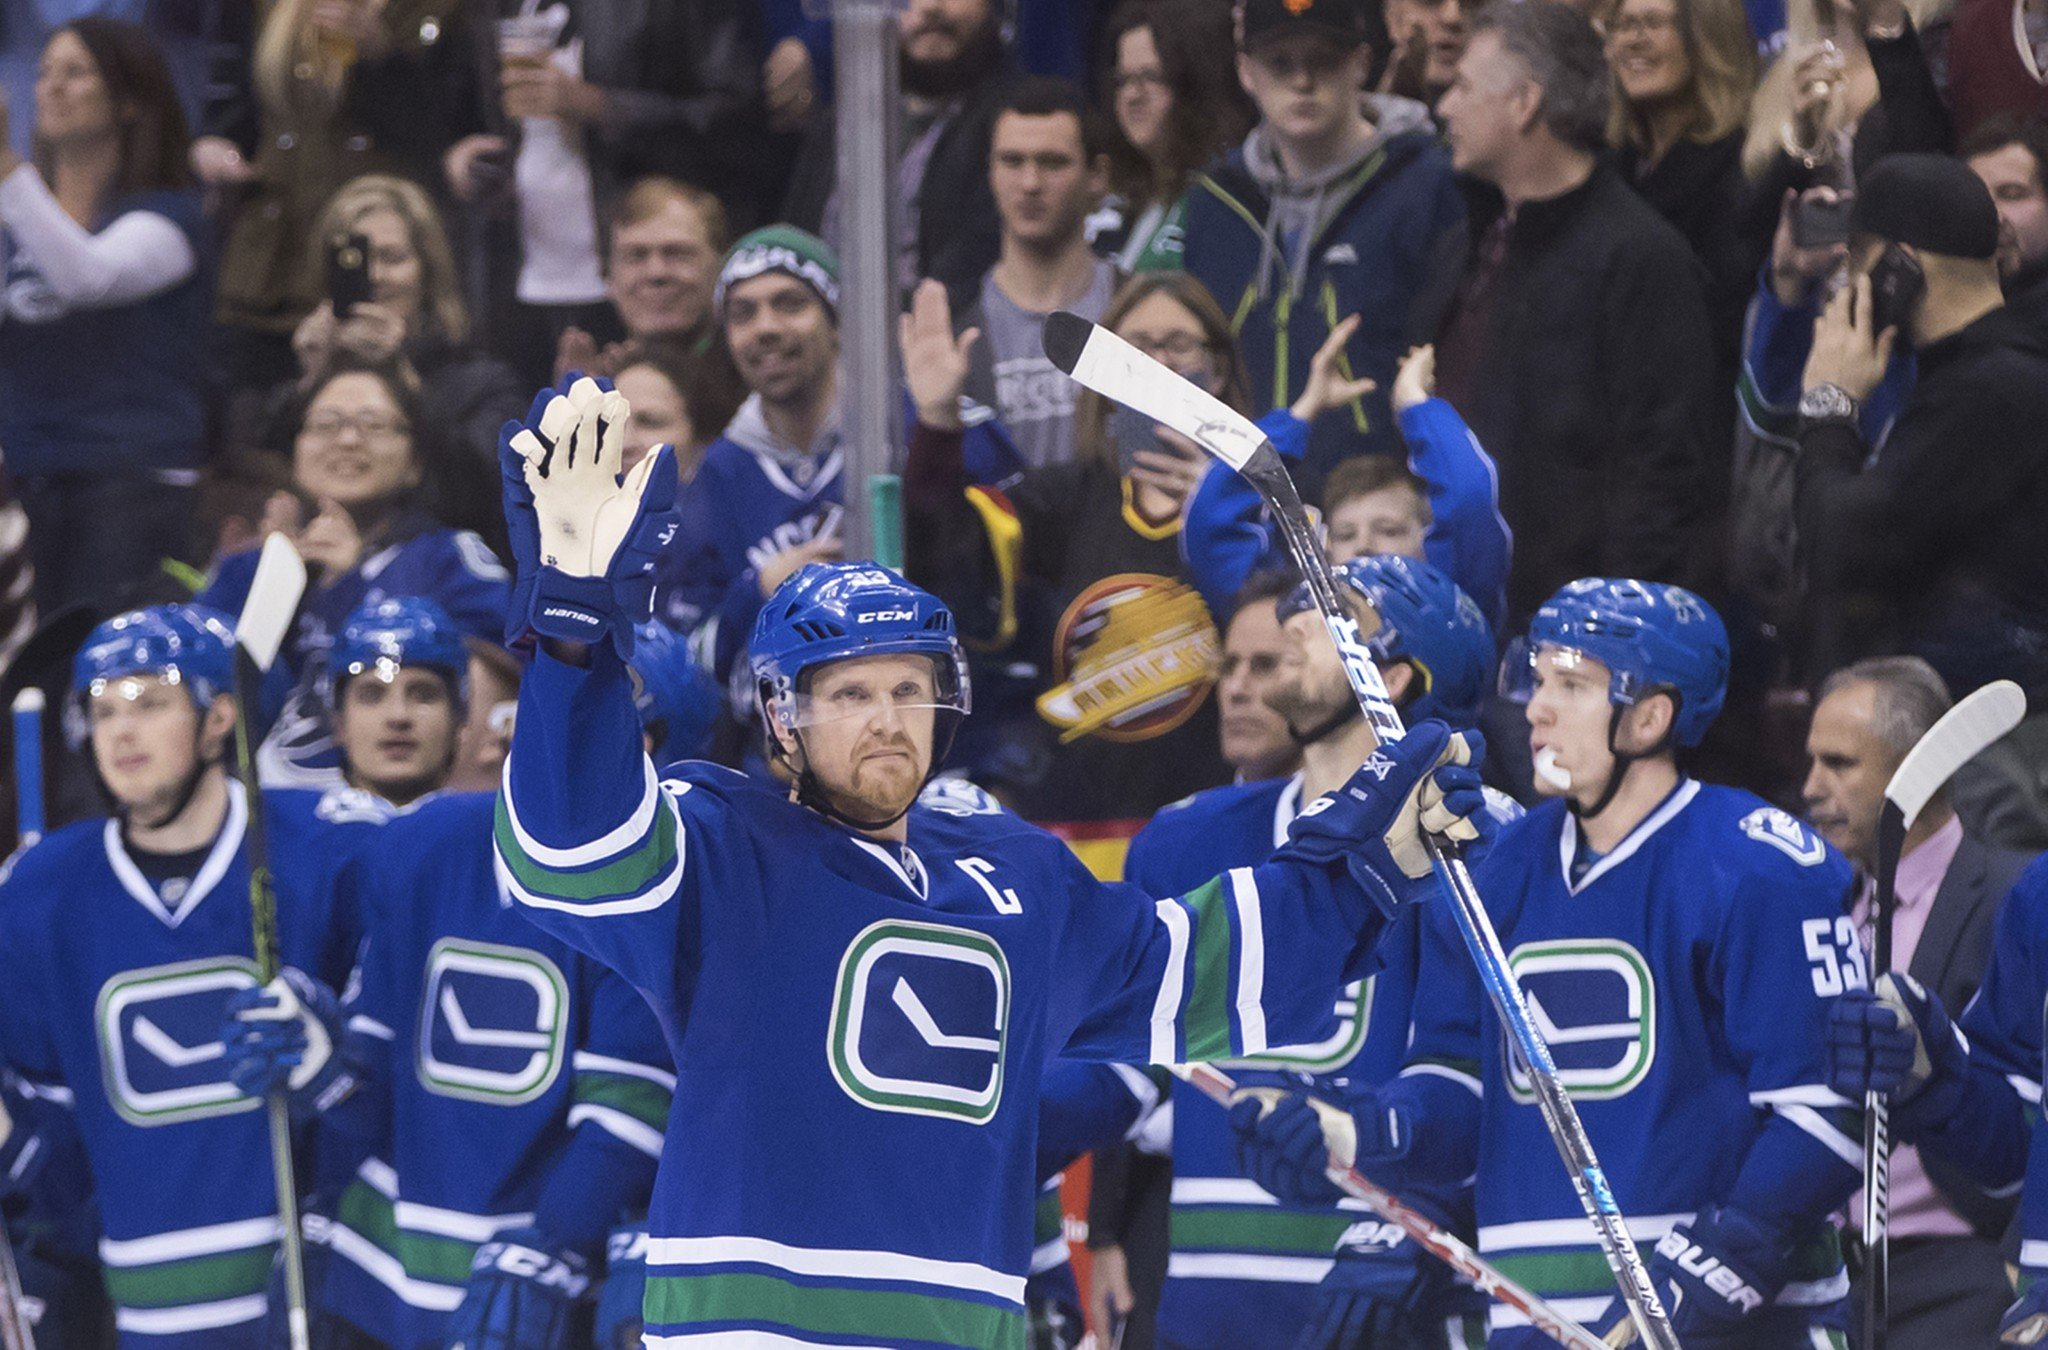 Vancouver Canucks' Henrik Sedin, of Sweden, waves as he receives a standing ovation from his teammates on the bench and the crowd after scoring a goal against the Florida Panthers to record his 1,000th career point, during the second period of an NHL hockey game Friday, Jan. 20, 2017, in Vancouver, British Columbia. (Darryl Dyck/The Canadian Press via AP)